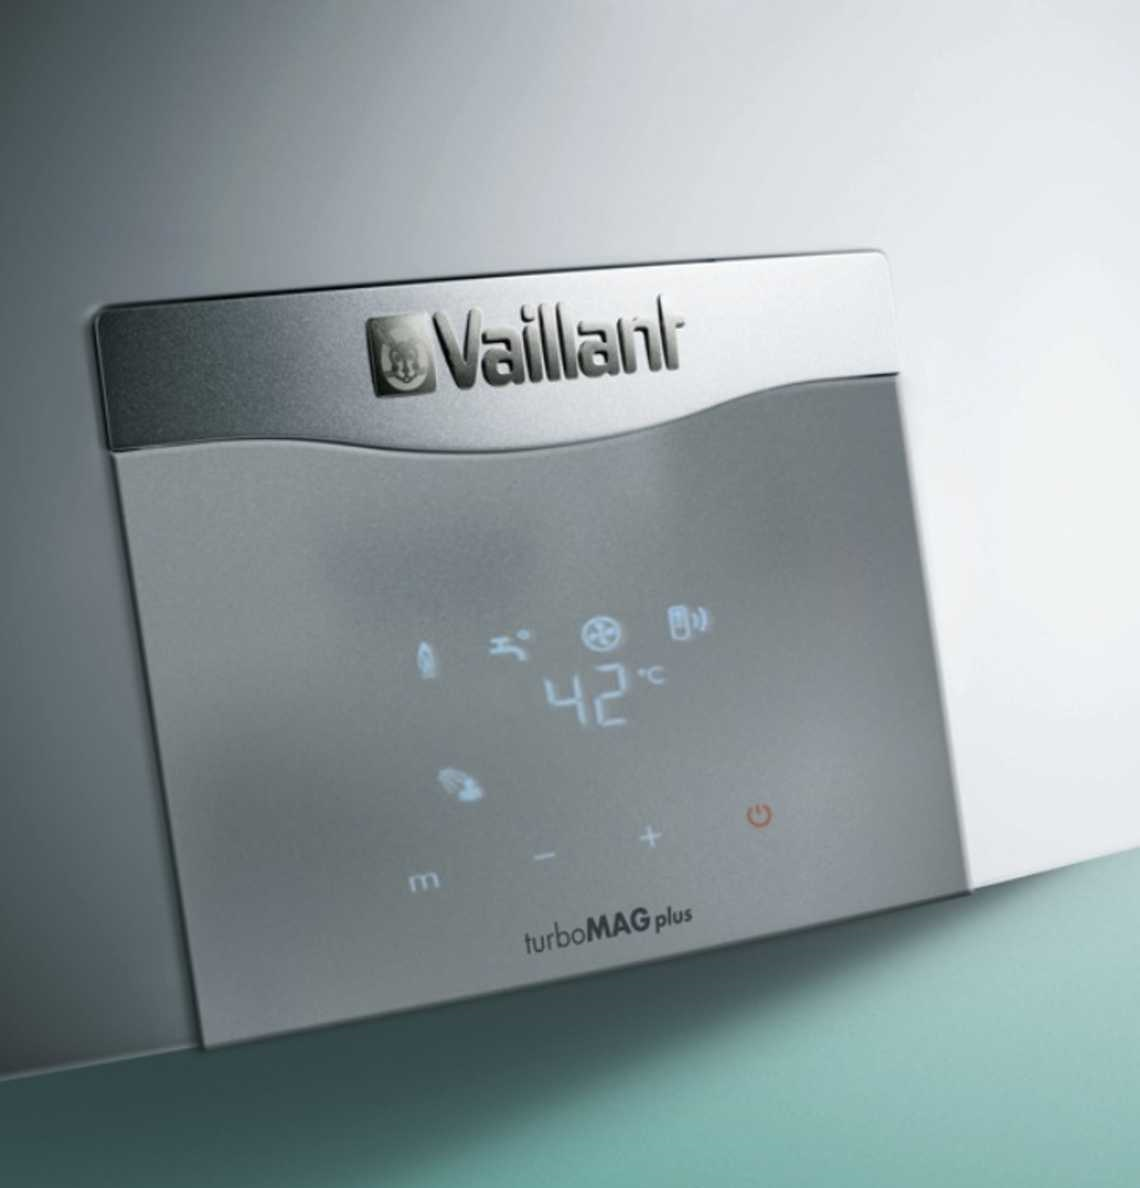 Panel de control digital - Calentador a gas Vaillant turboMAG plus